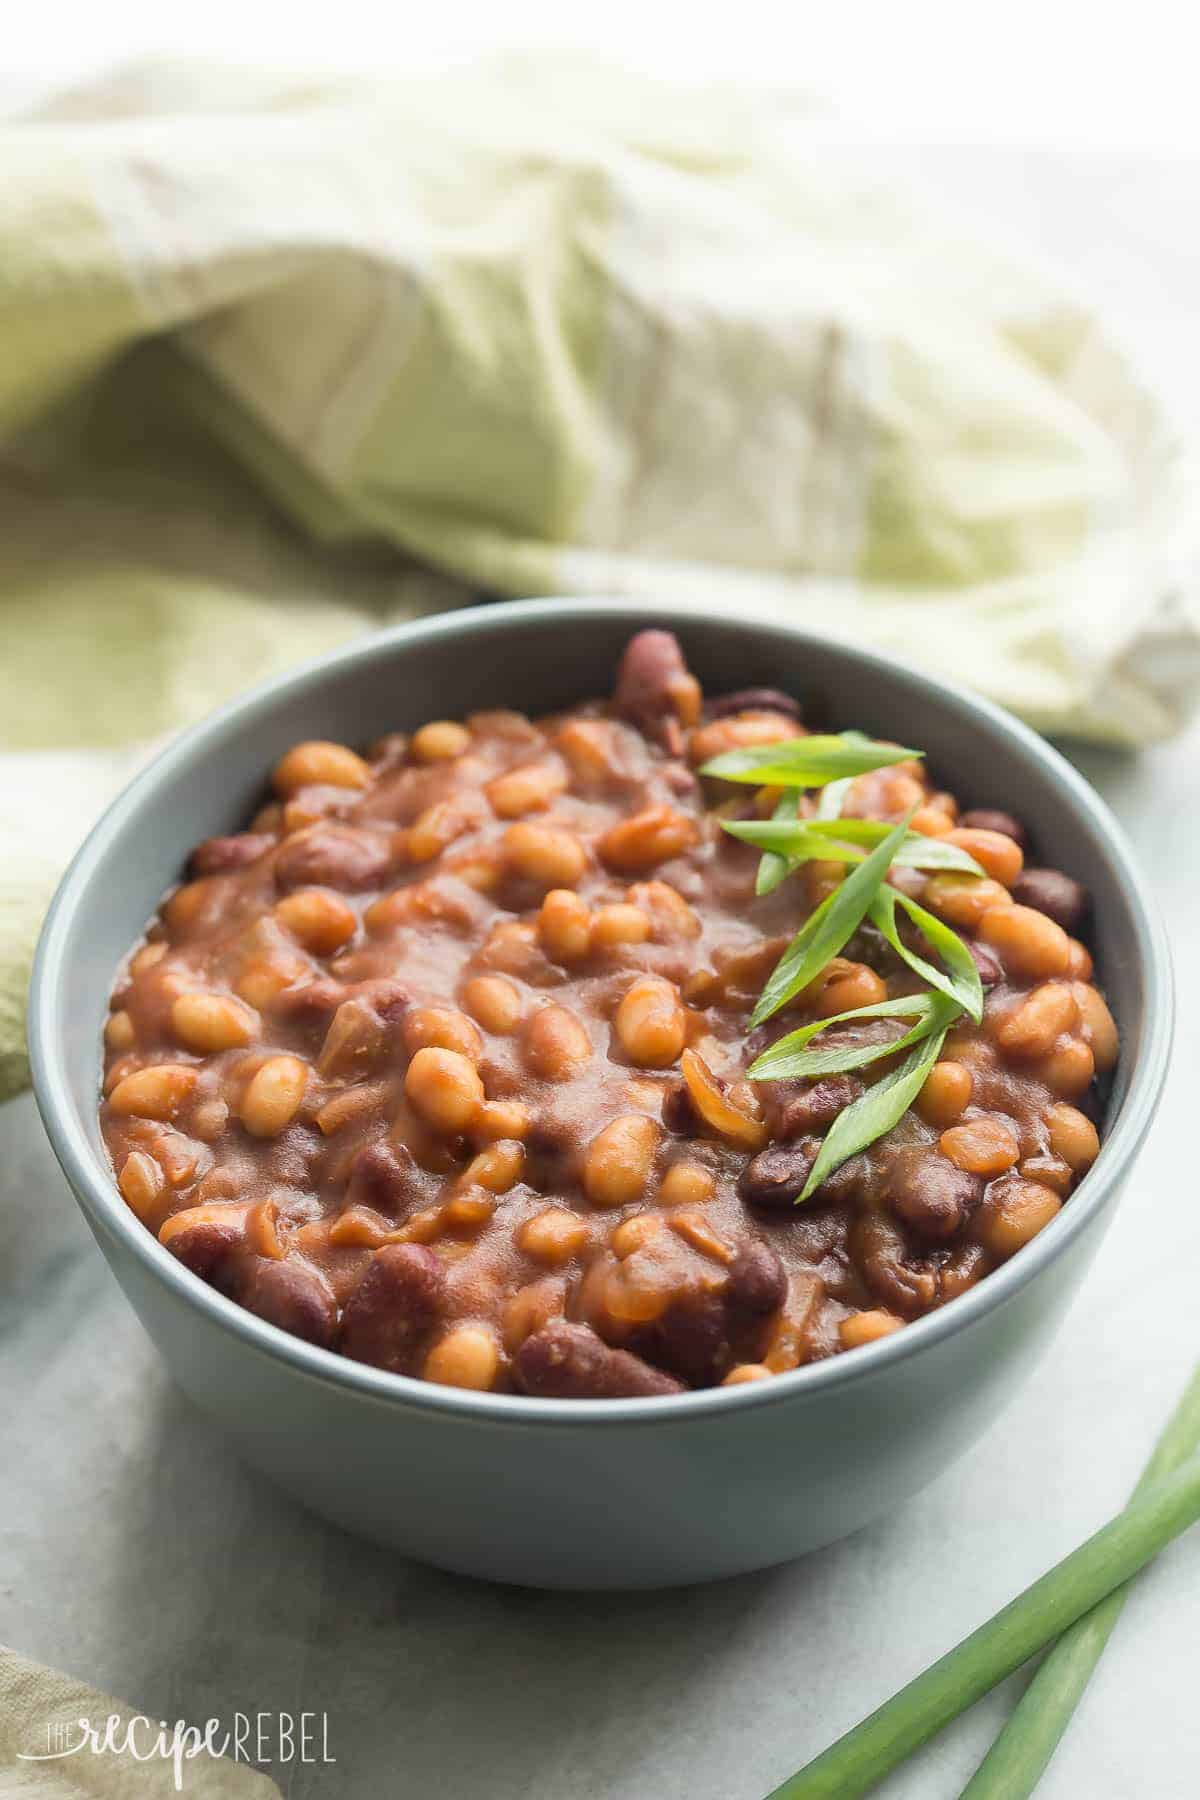 We LOVE these for summer barbecues! Healthier Slow Cooker Baked Beans that pack a big punch of flavor with maple syrup and balsamic vinegar -- great cold or warm! Gluten free. www.thereciperebel.com